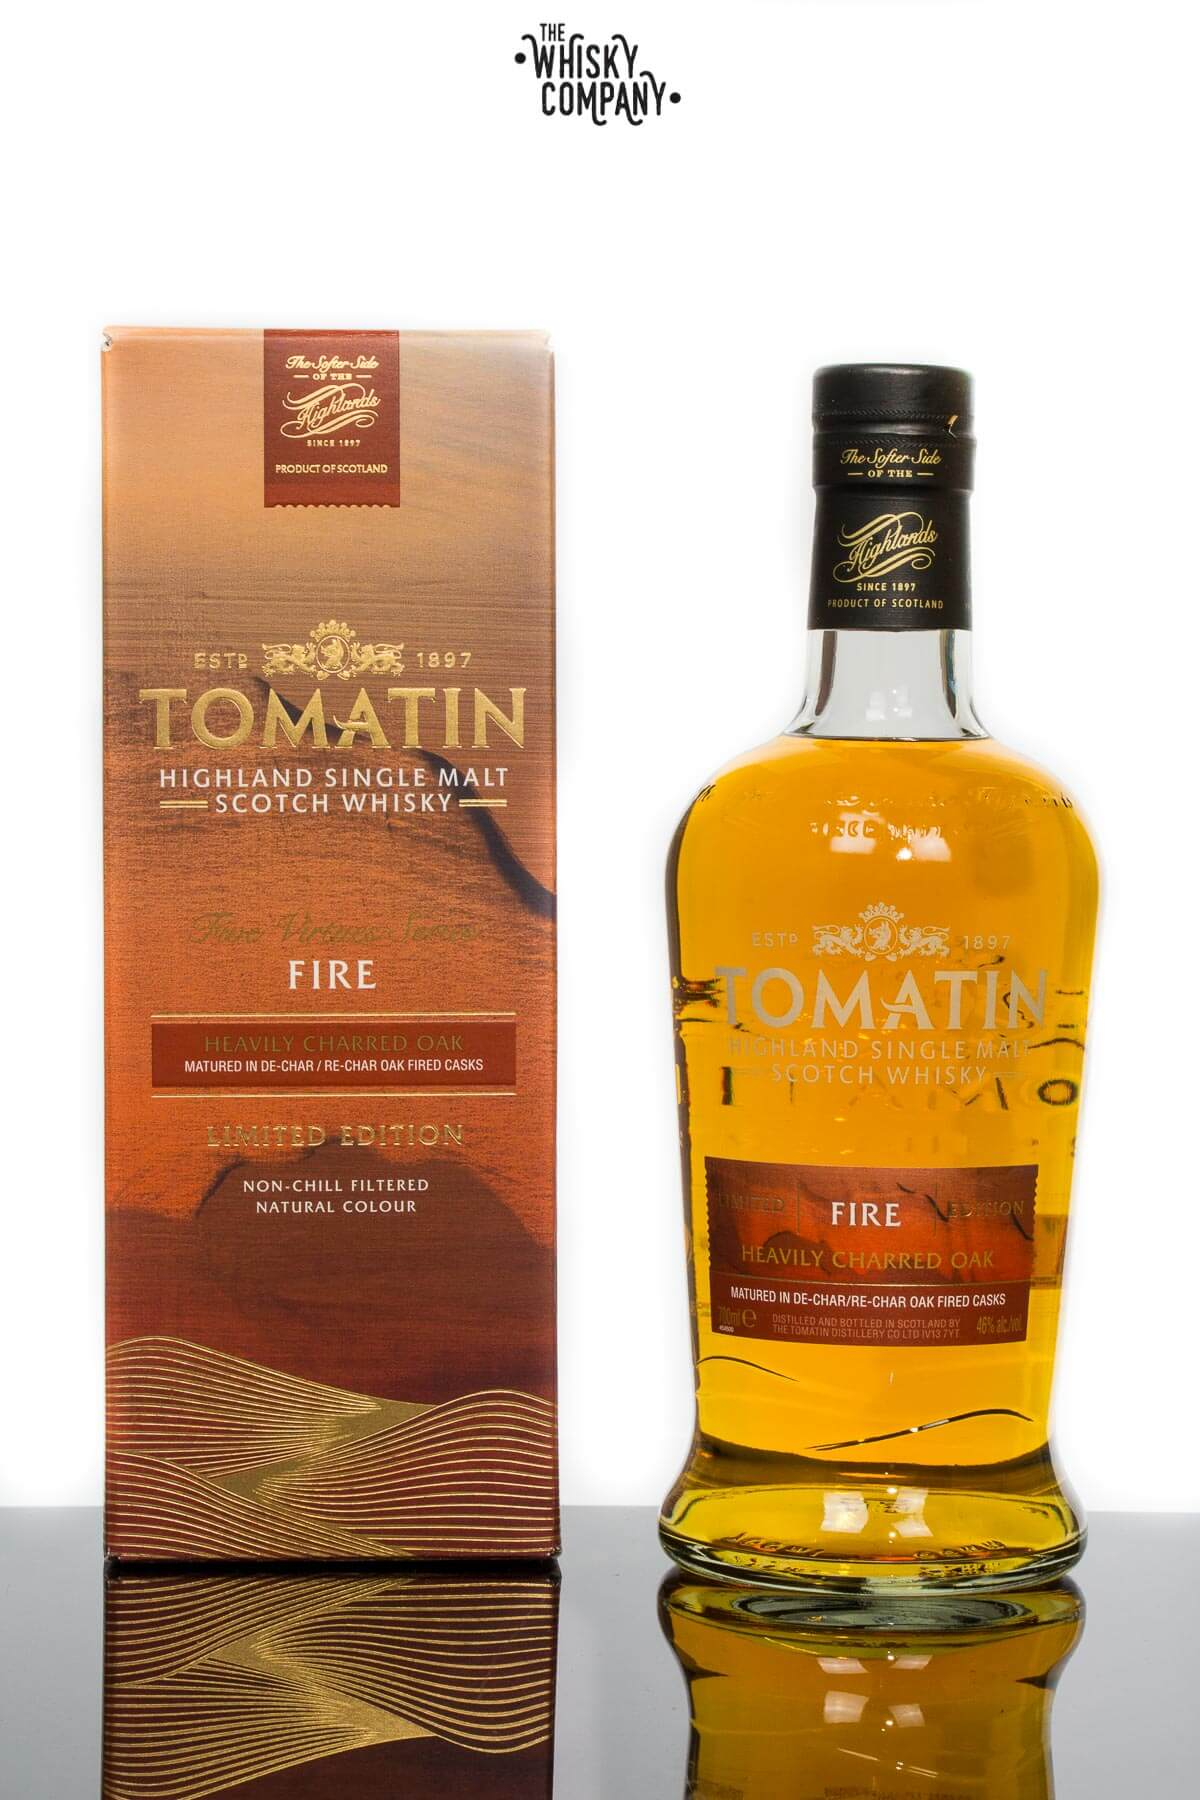 Tomatin Five Virtues Series Fire Highland Single Malt Scotch Whisky (700ml)